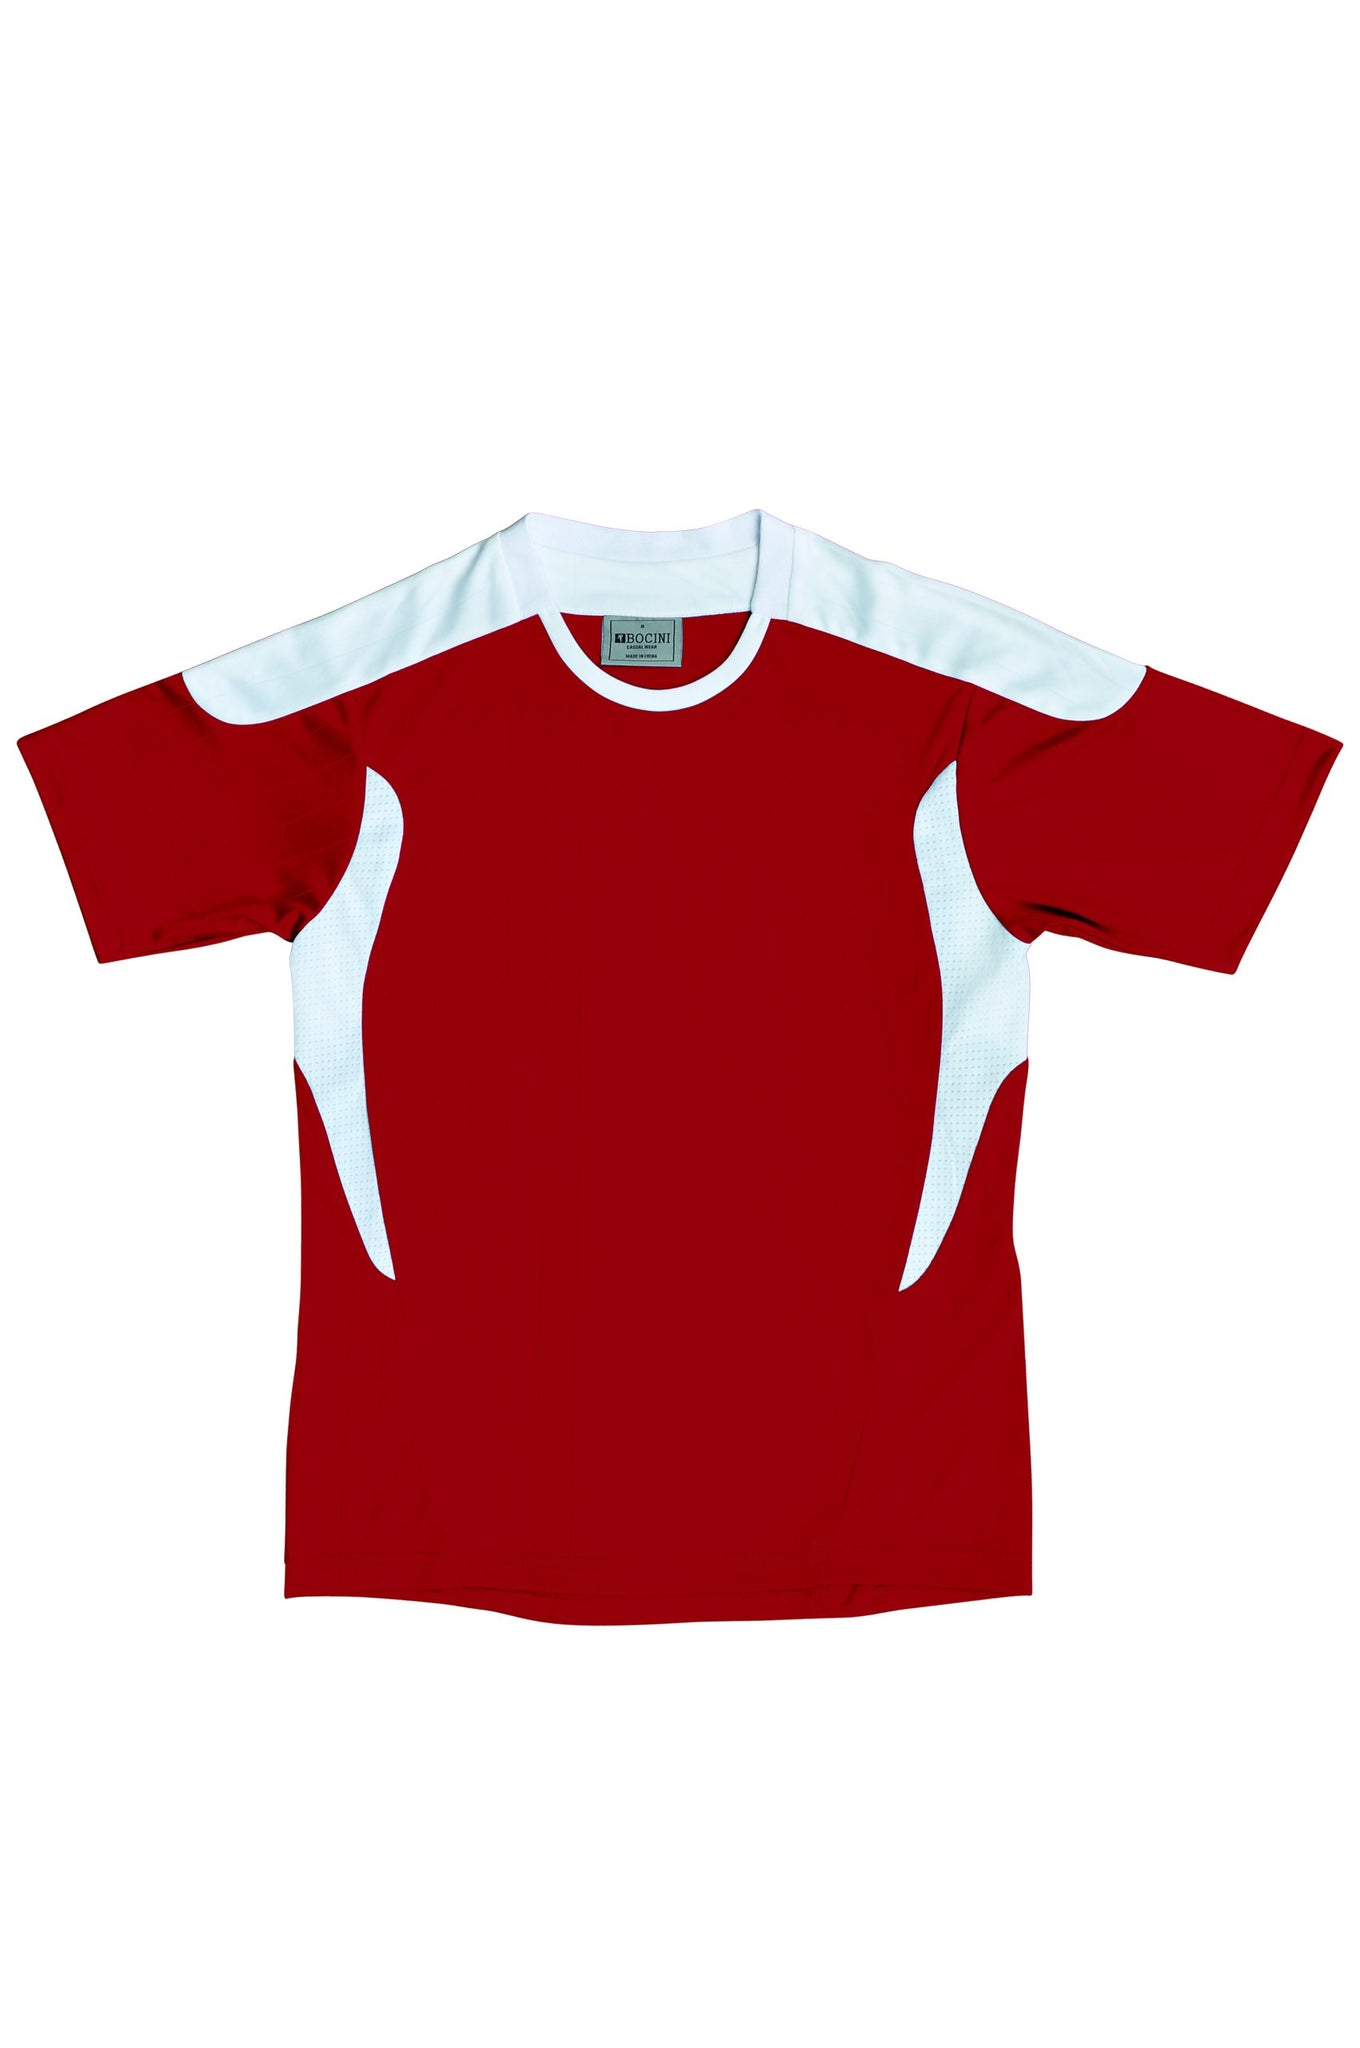 All Sports Jersey - Red/Wht